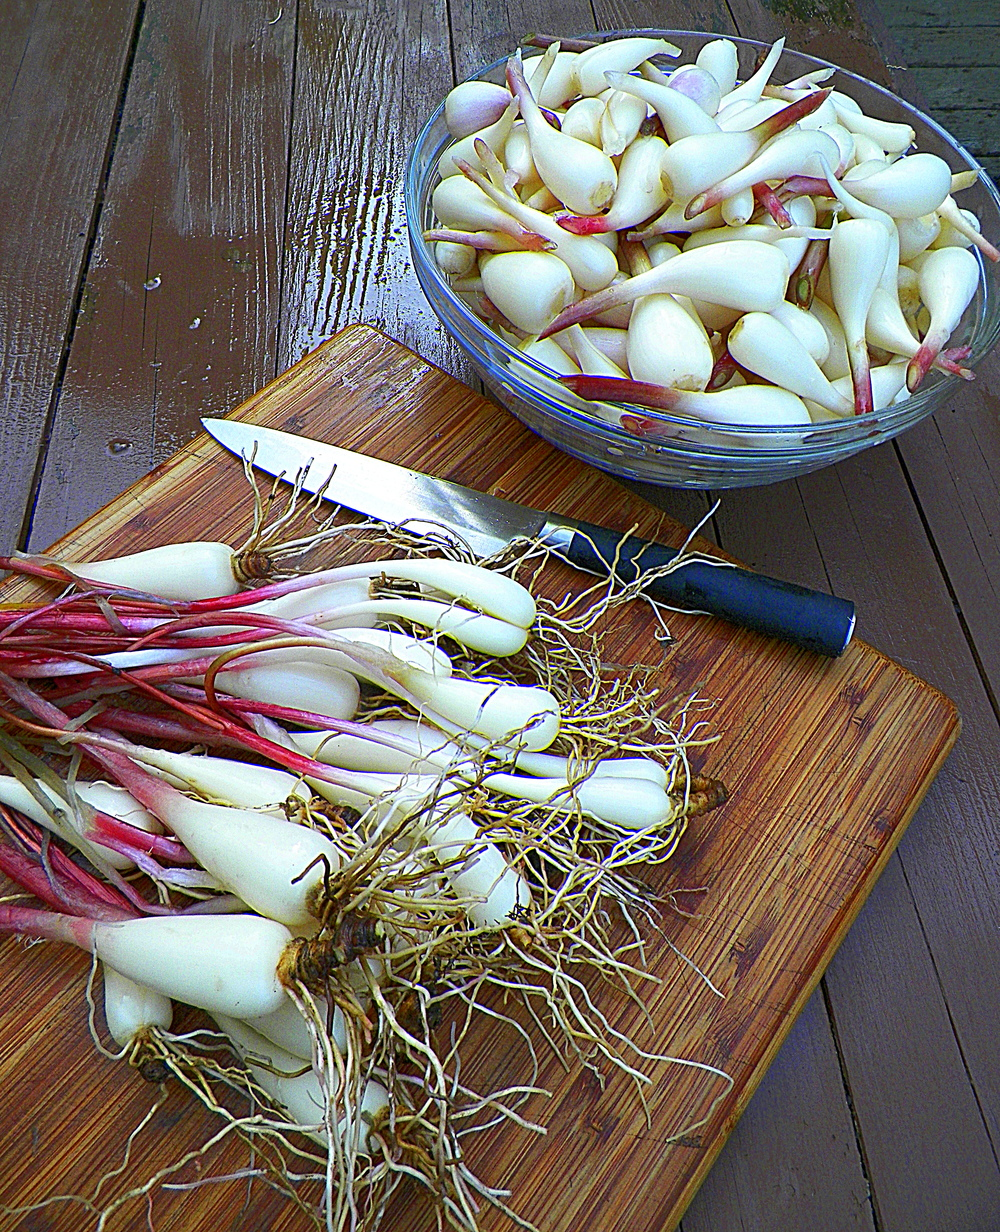 late season ramps